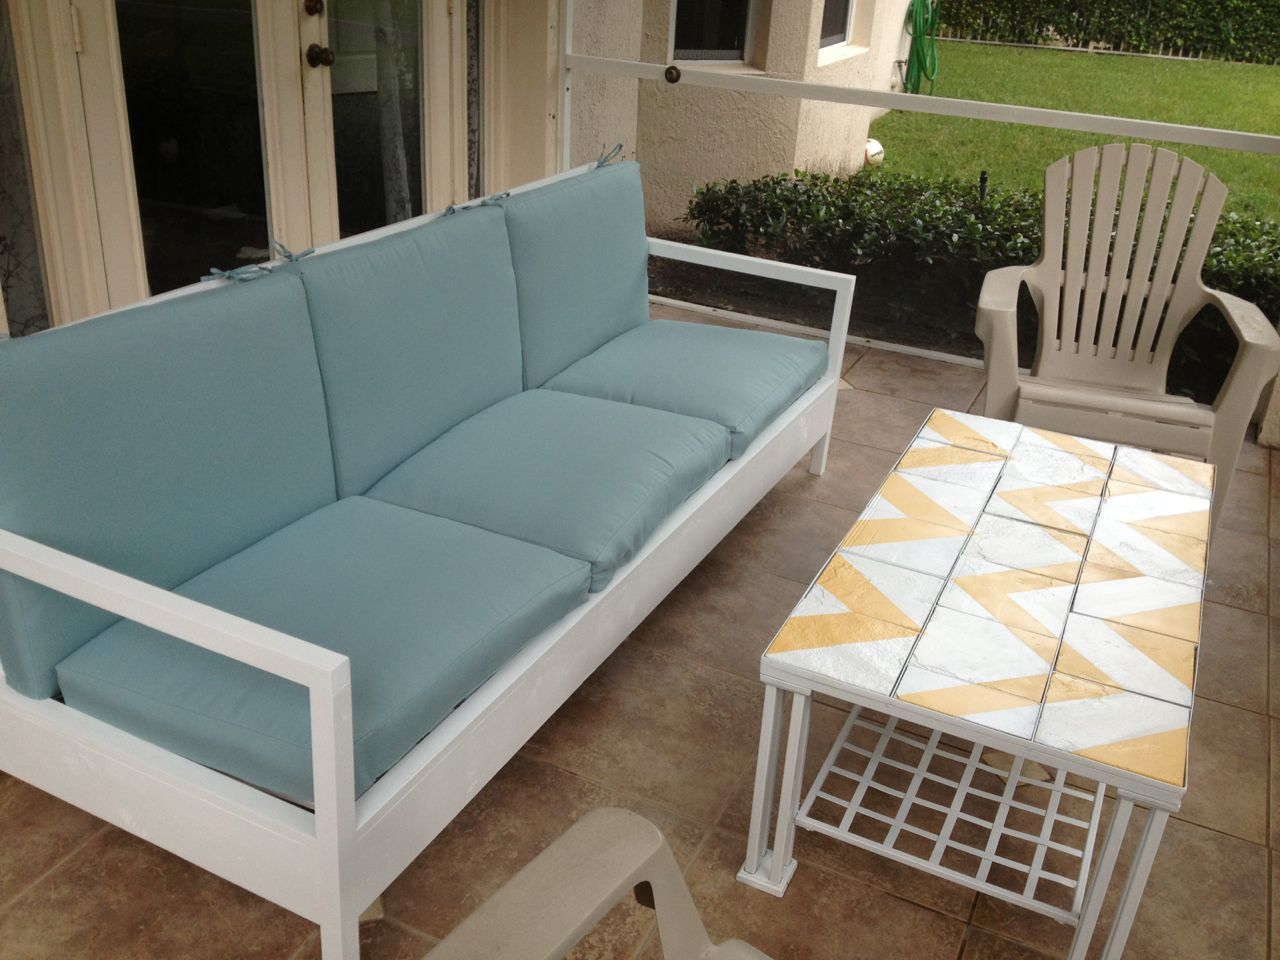 Ana White Simple White Patio Sofa DIY Projects Patio